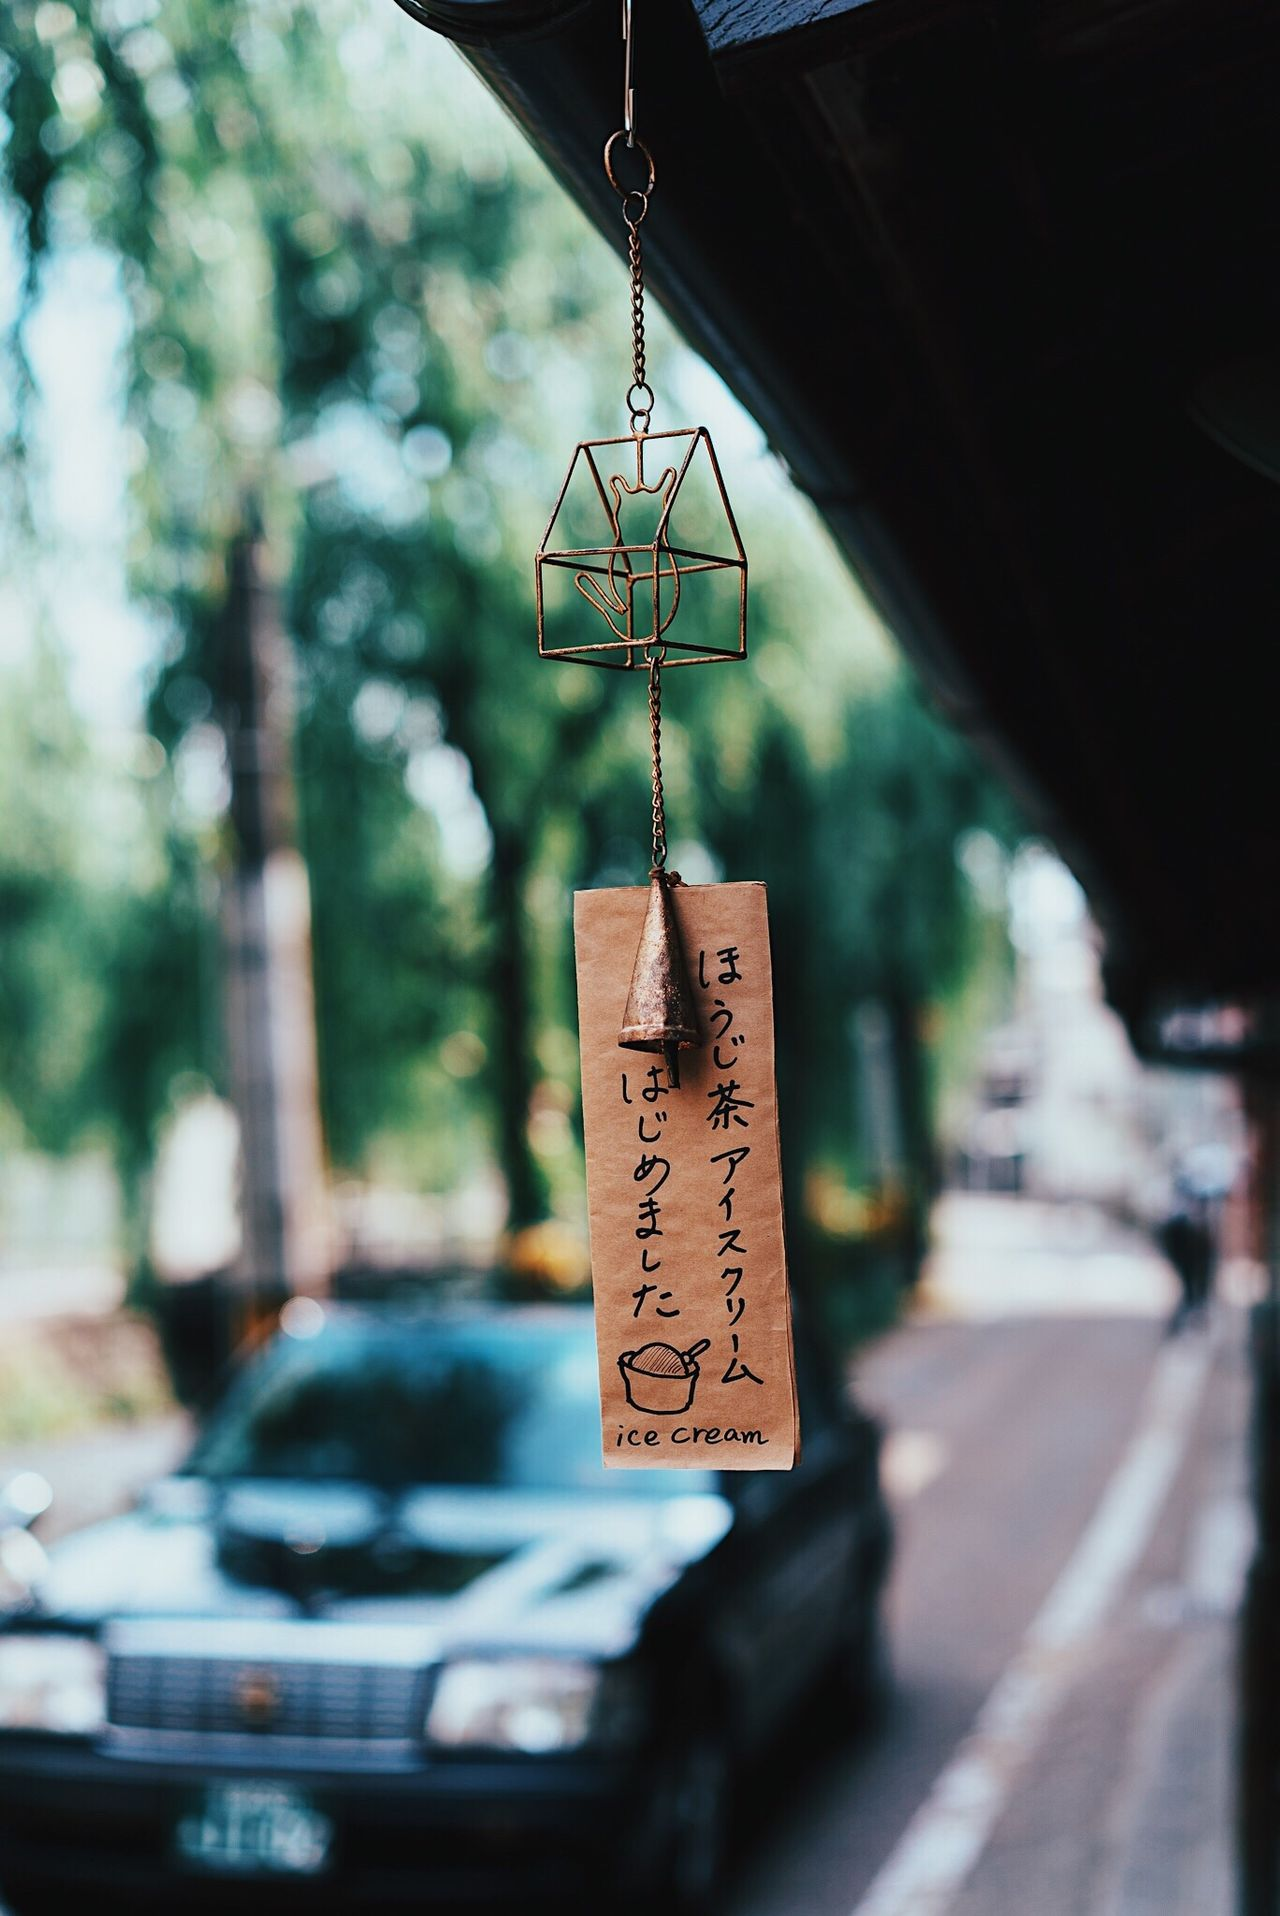 Hanging Focus On Foreground No People Bars And Restaurants Japanese Culture Kyoto, Japan